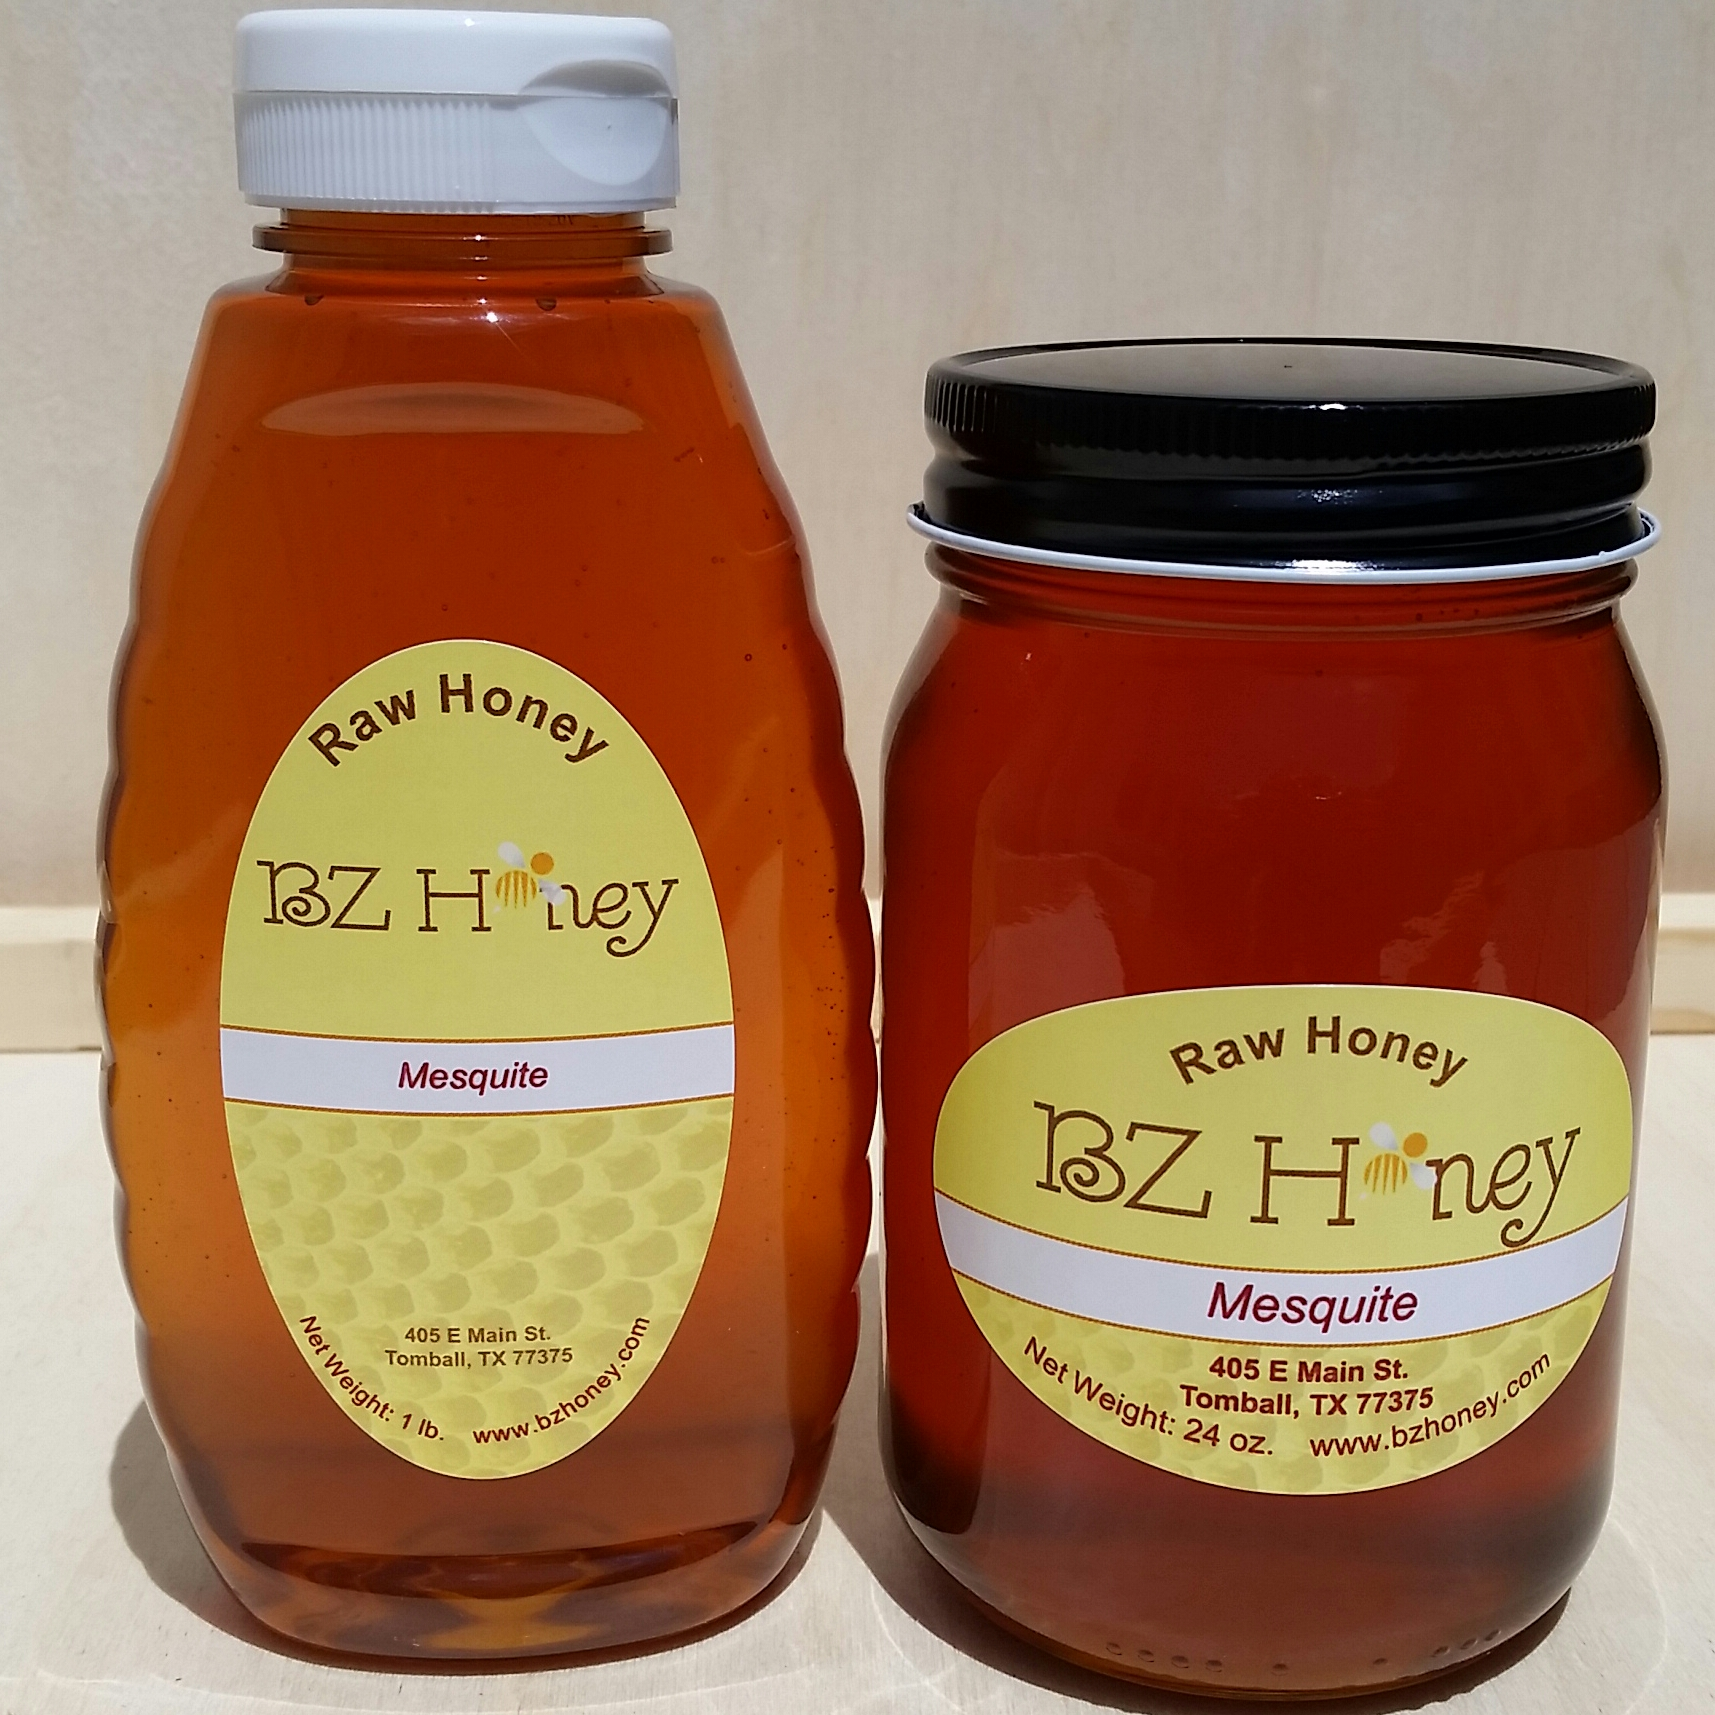 BZ Honey - Our mesquite honey from the Southwest US is light, sweet, and has a memorable mesquite flavor, more delicate, but similar to mesquite smoke.